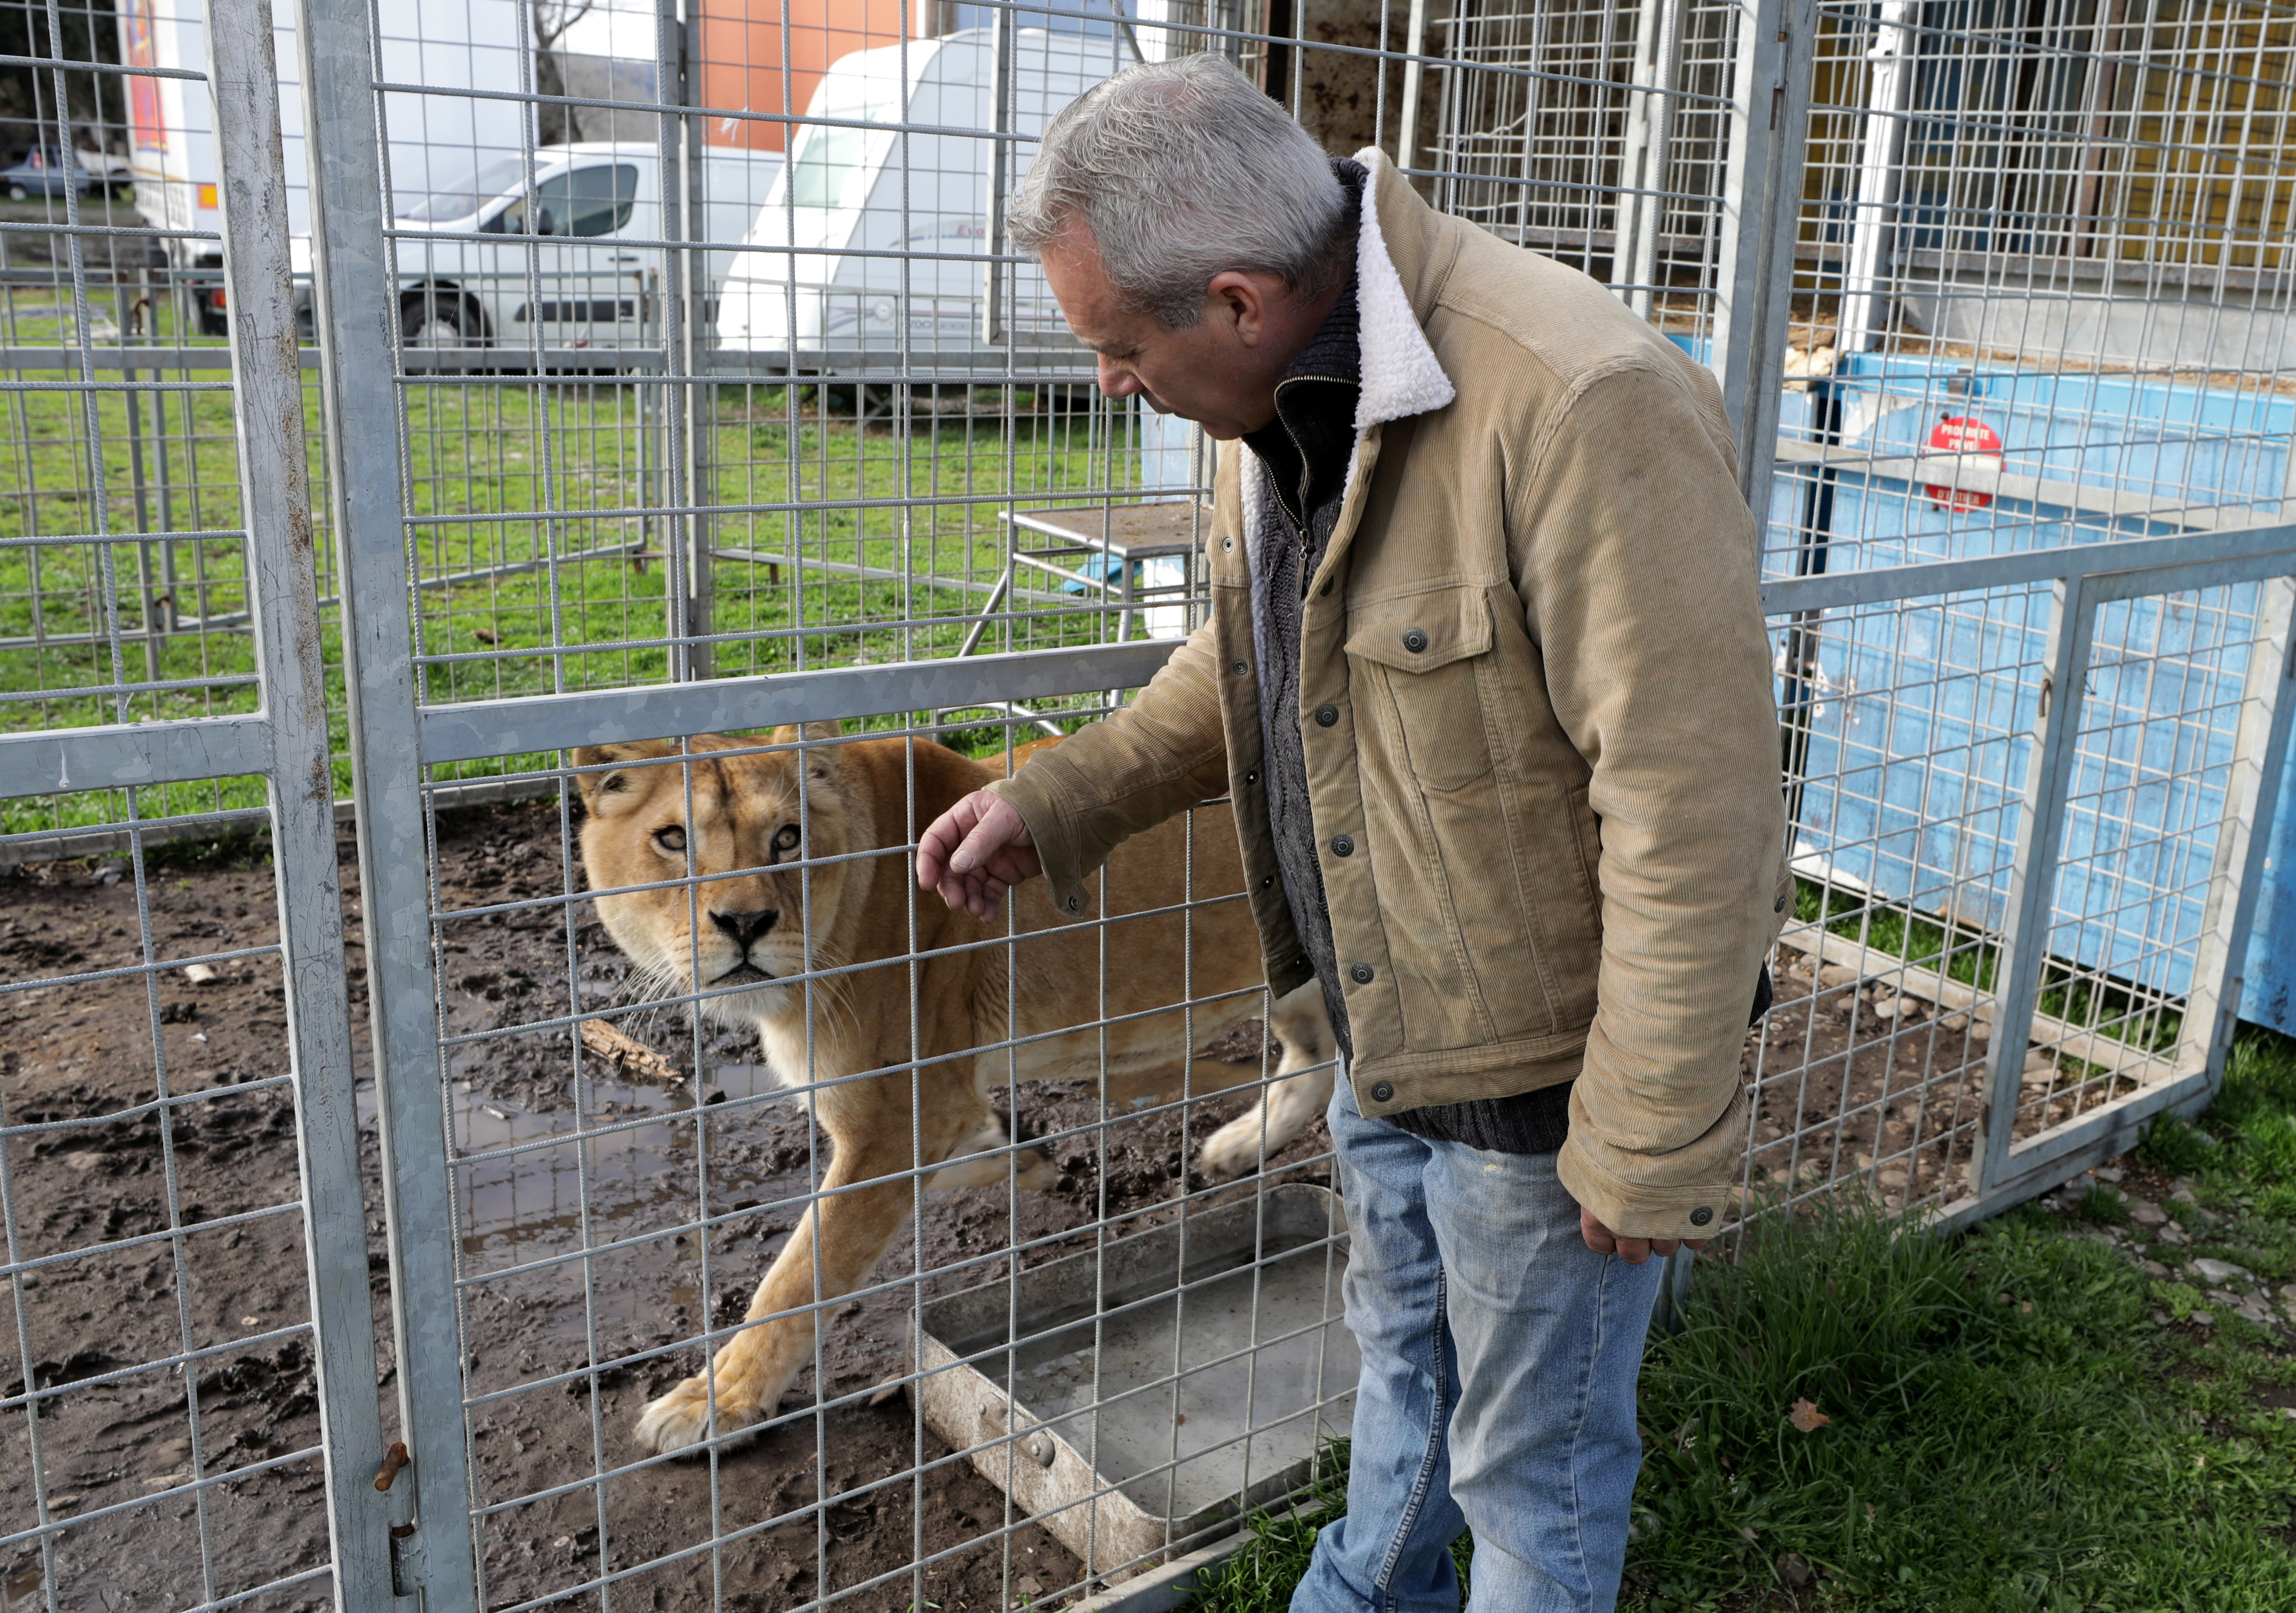 William Kerwich, owner of the Royal Circus and President of the Circus and Shows Animals Union, poses with a lion at the circus home base in Senas as circus shows remained shut as part of COVID-19 restrictions measures to fight the coronavirus disease outbreak in France, February 9, 2021. Kerwich also denounced an animal welfare bill which is debated by French lawmakers that would ban using wild animals in traveling circuses and keeping dolphins and whales in captivity in marine parks. Picture taken February 9, 2021. REUTERS/Eric Gaillard